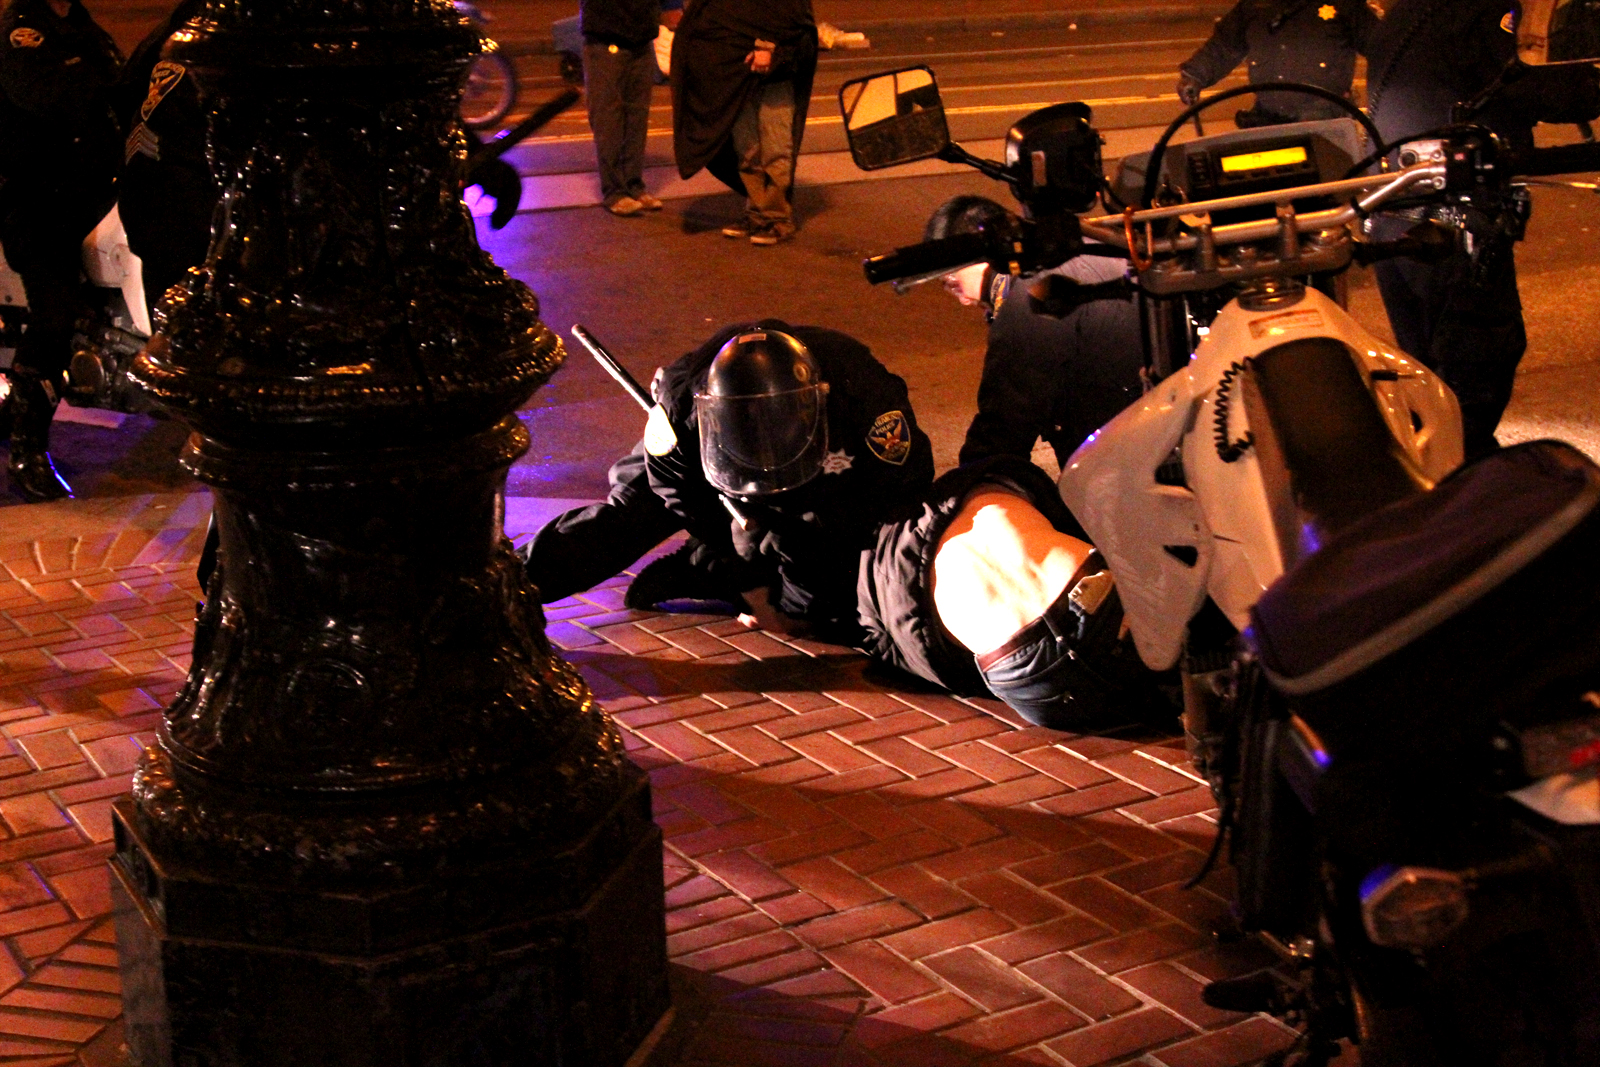 Occupy SF Dismantled by Police Overnight